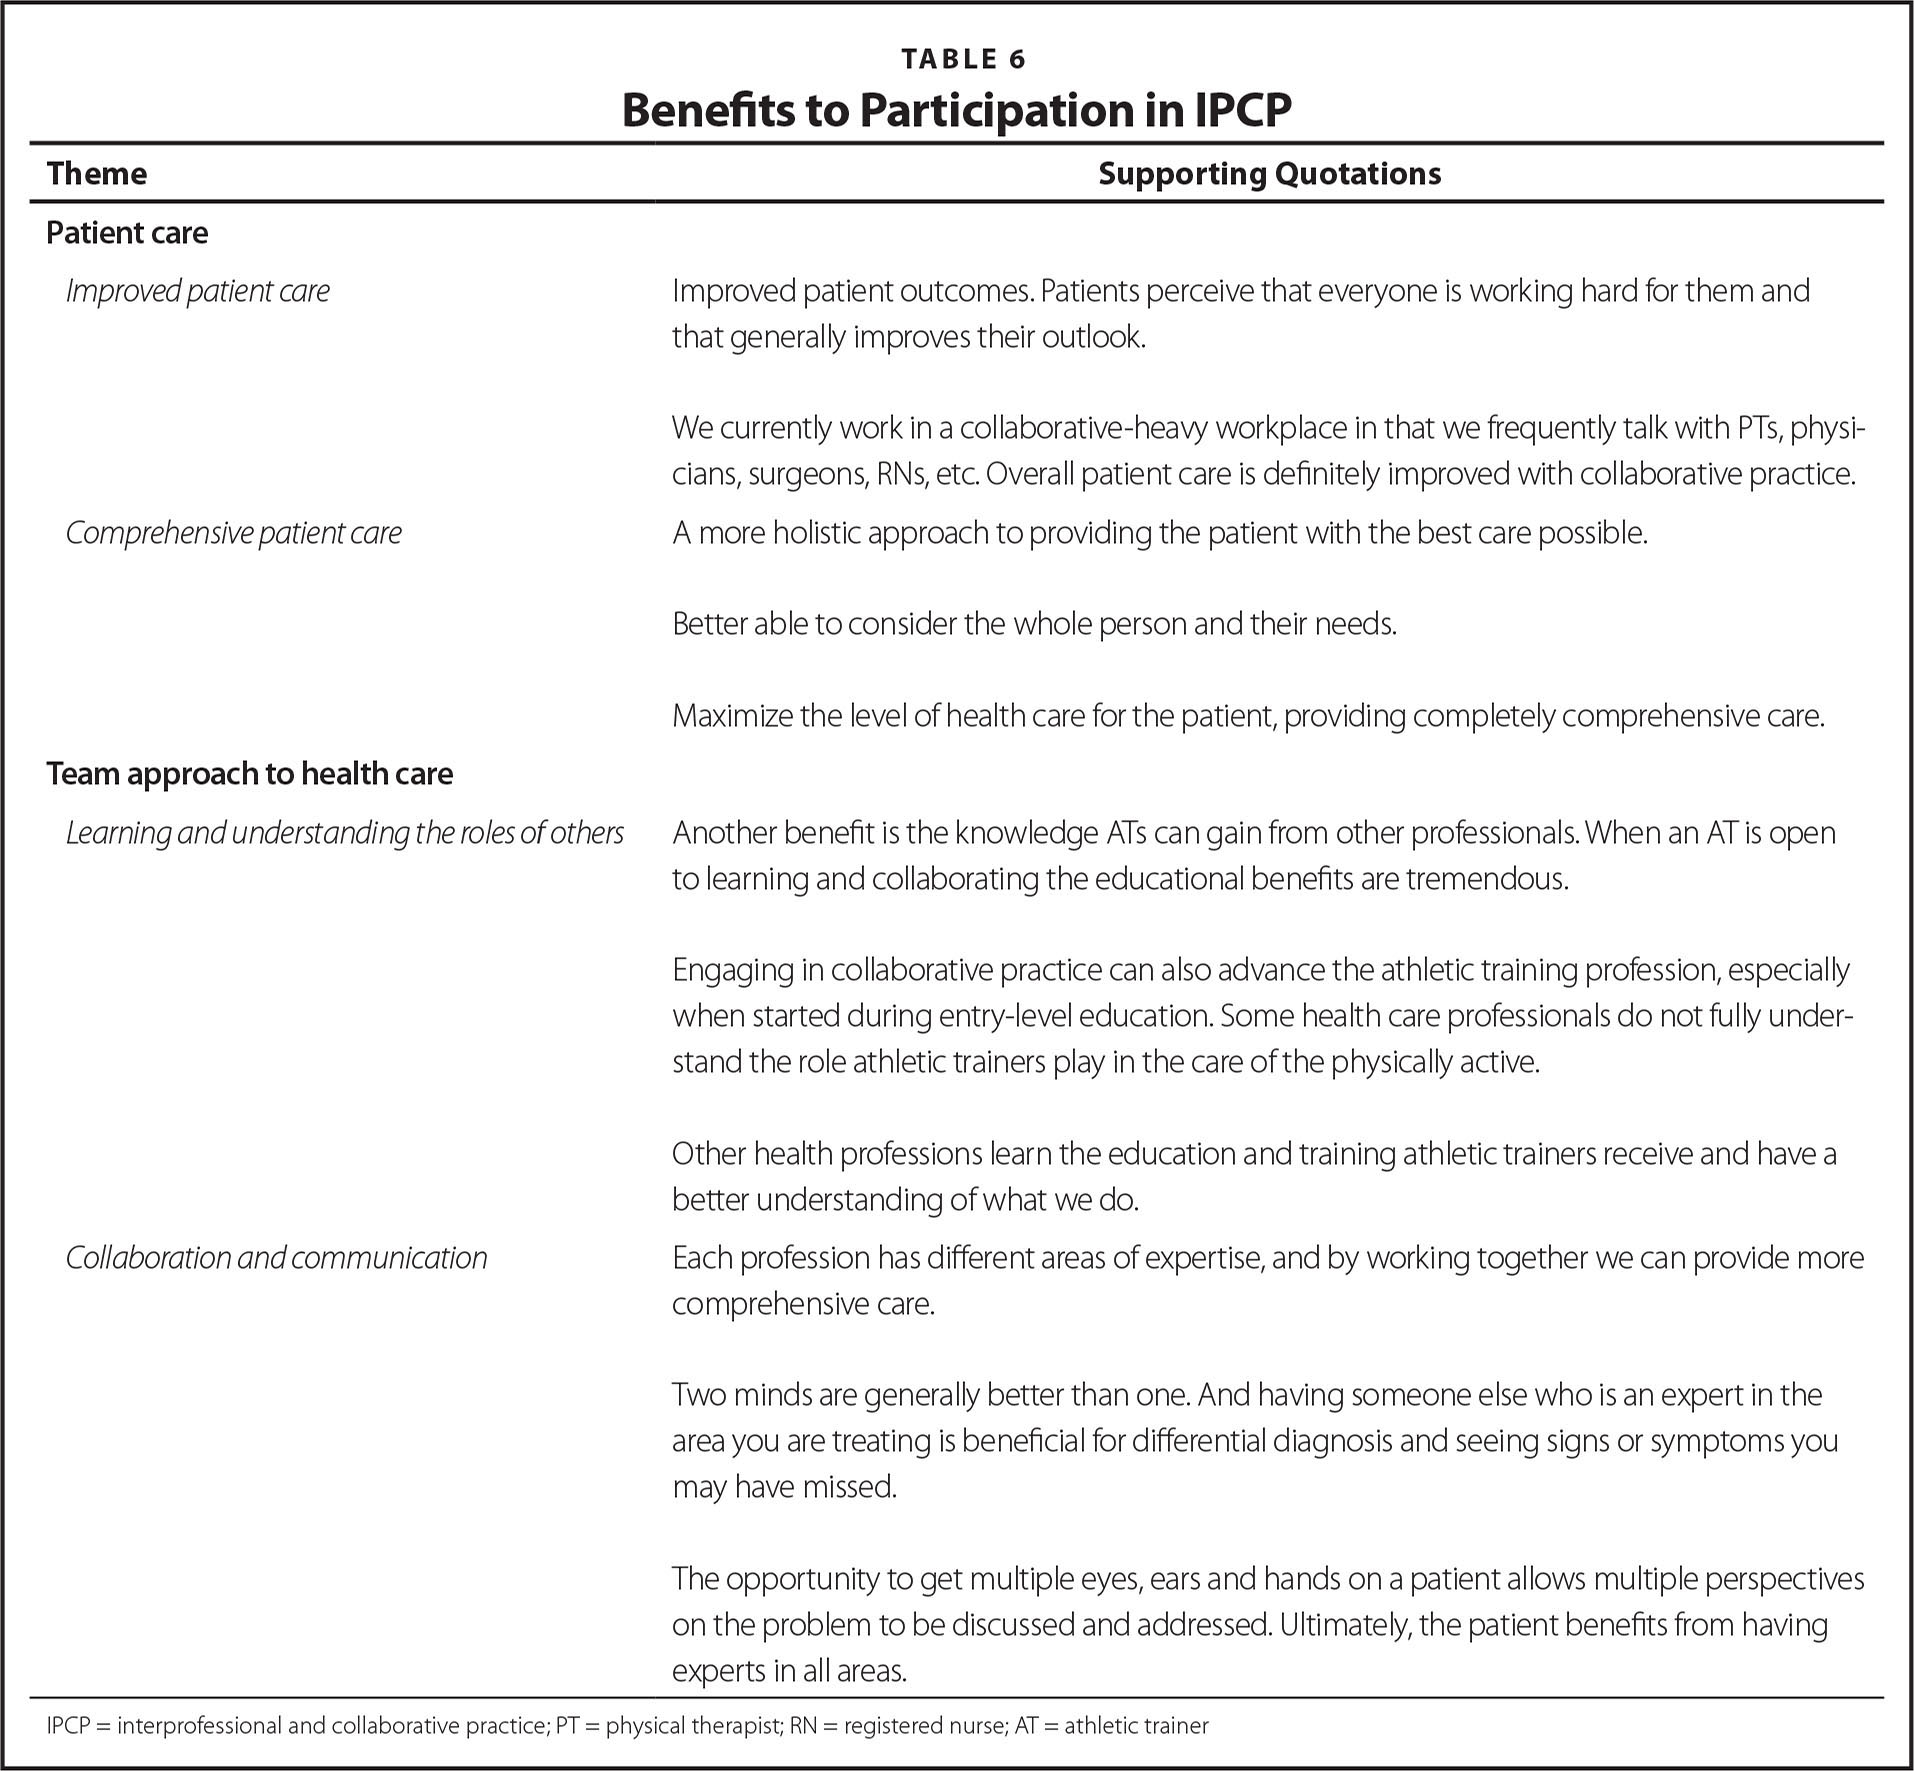 Benefits to Participation in IPCP